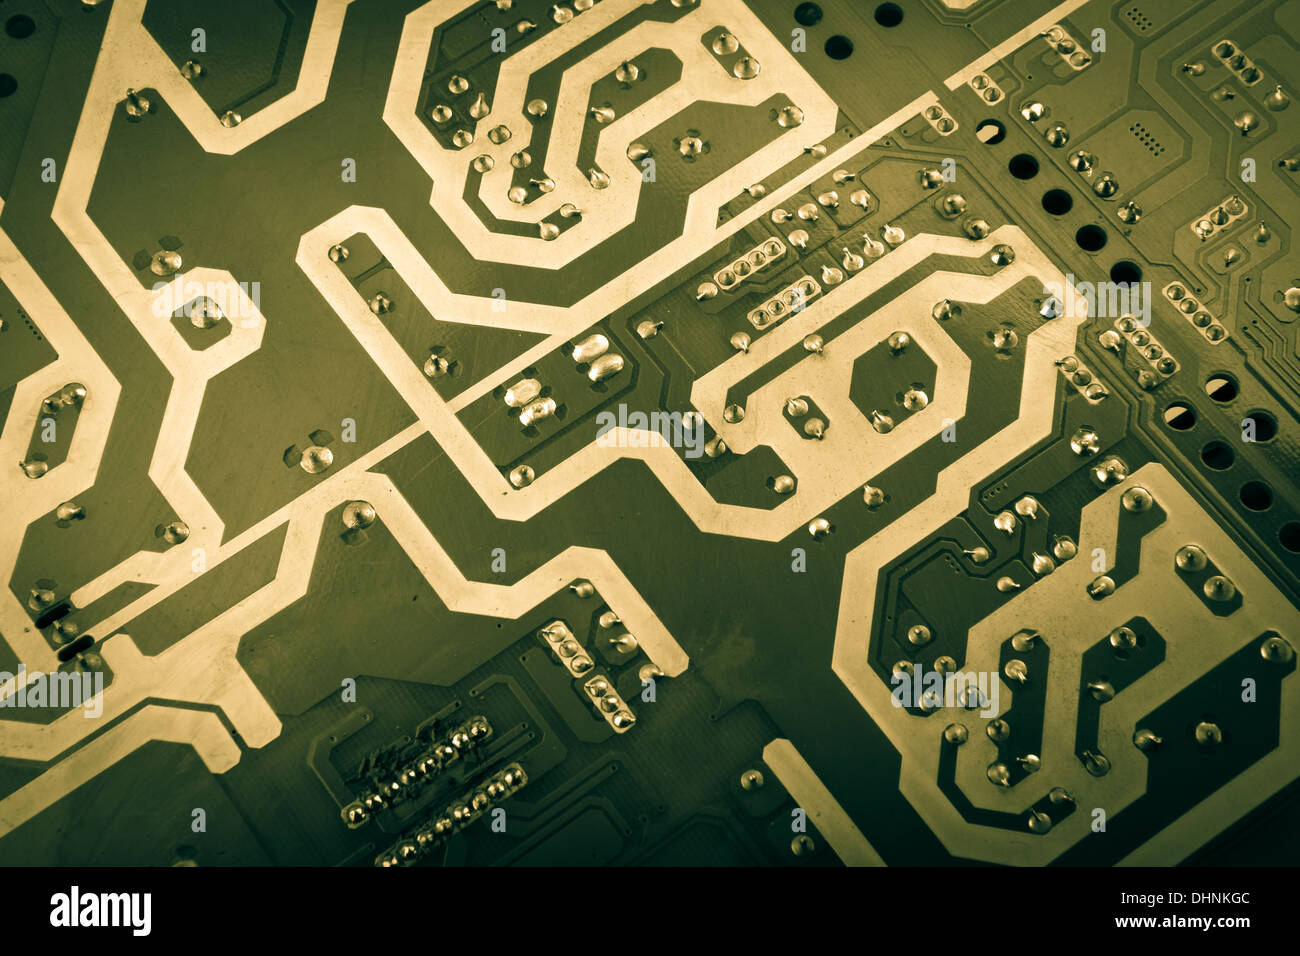 computer board with chips and components - Stock Image